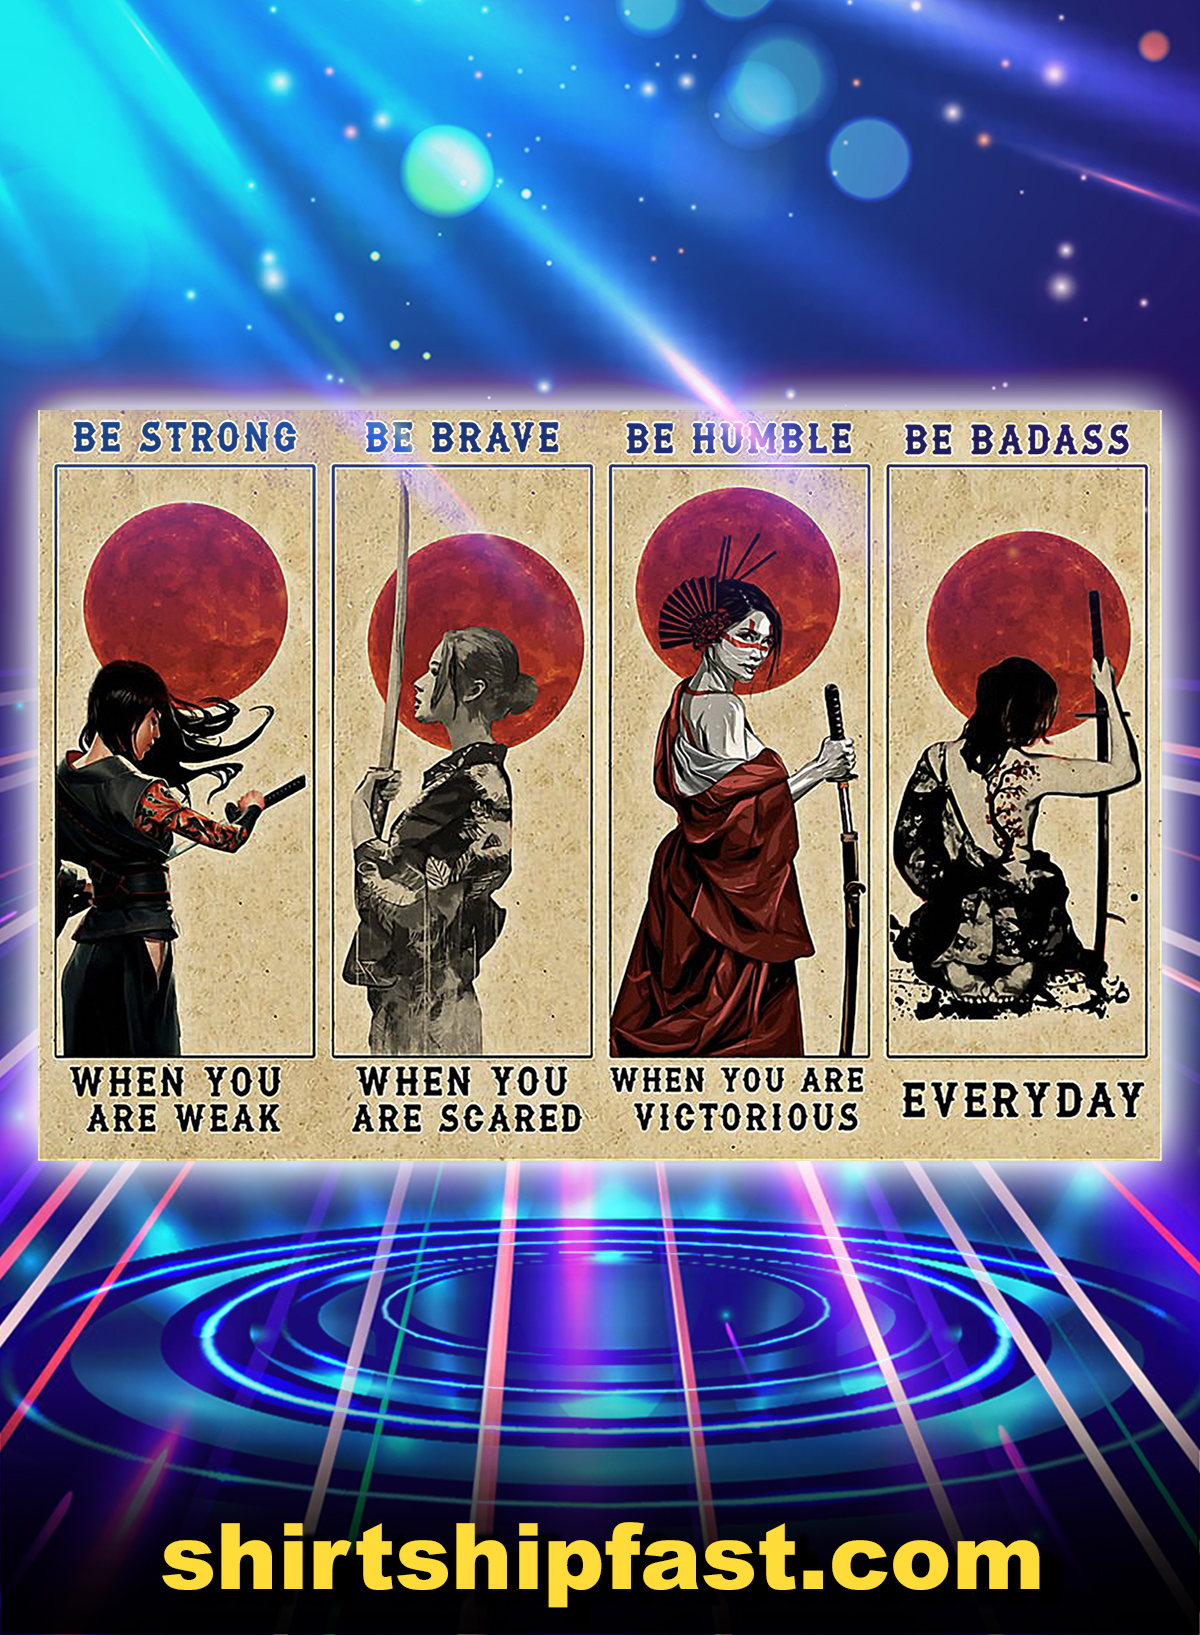 Samurai women be strong be brave be humble be badass poster - A4